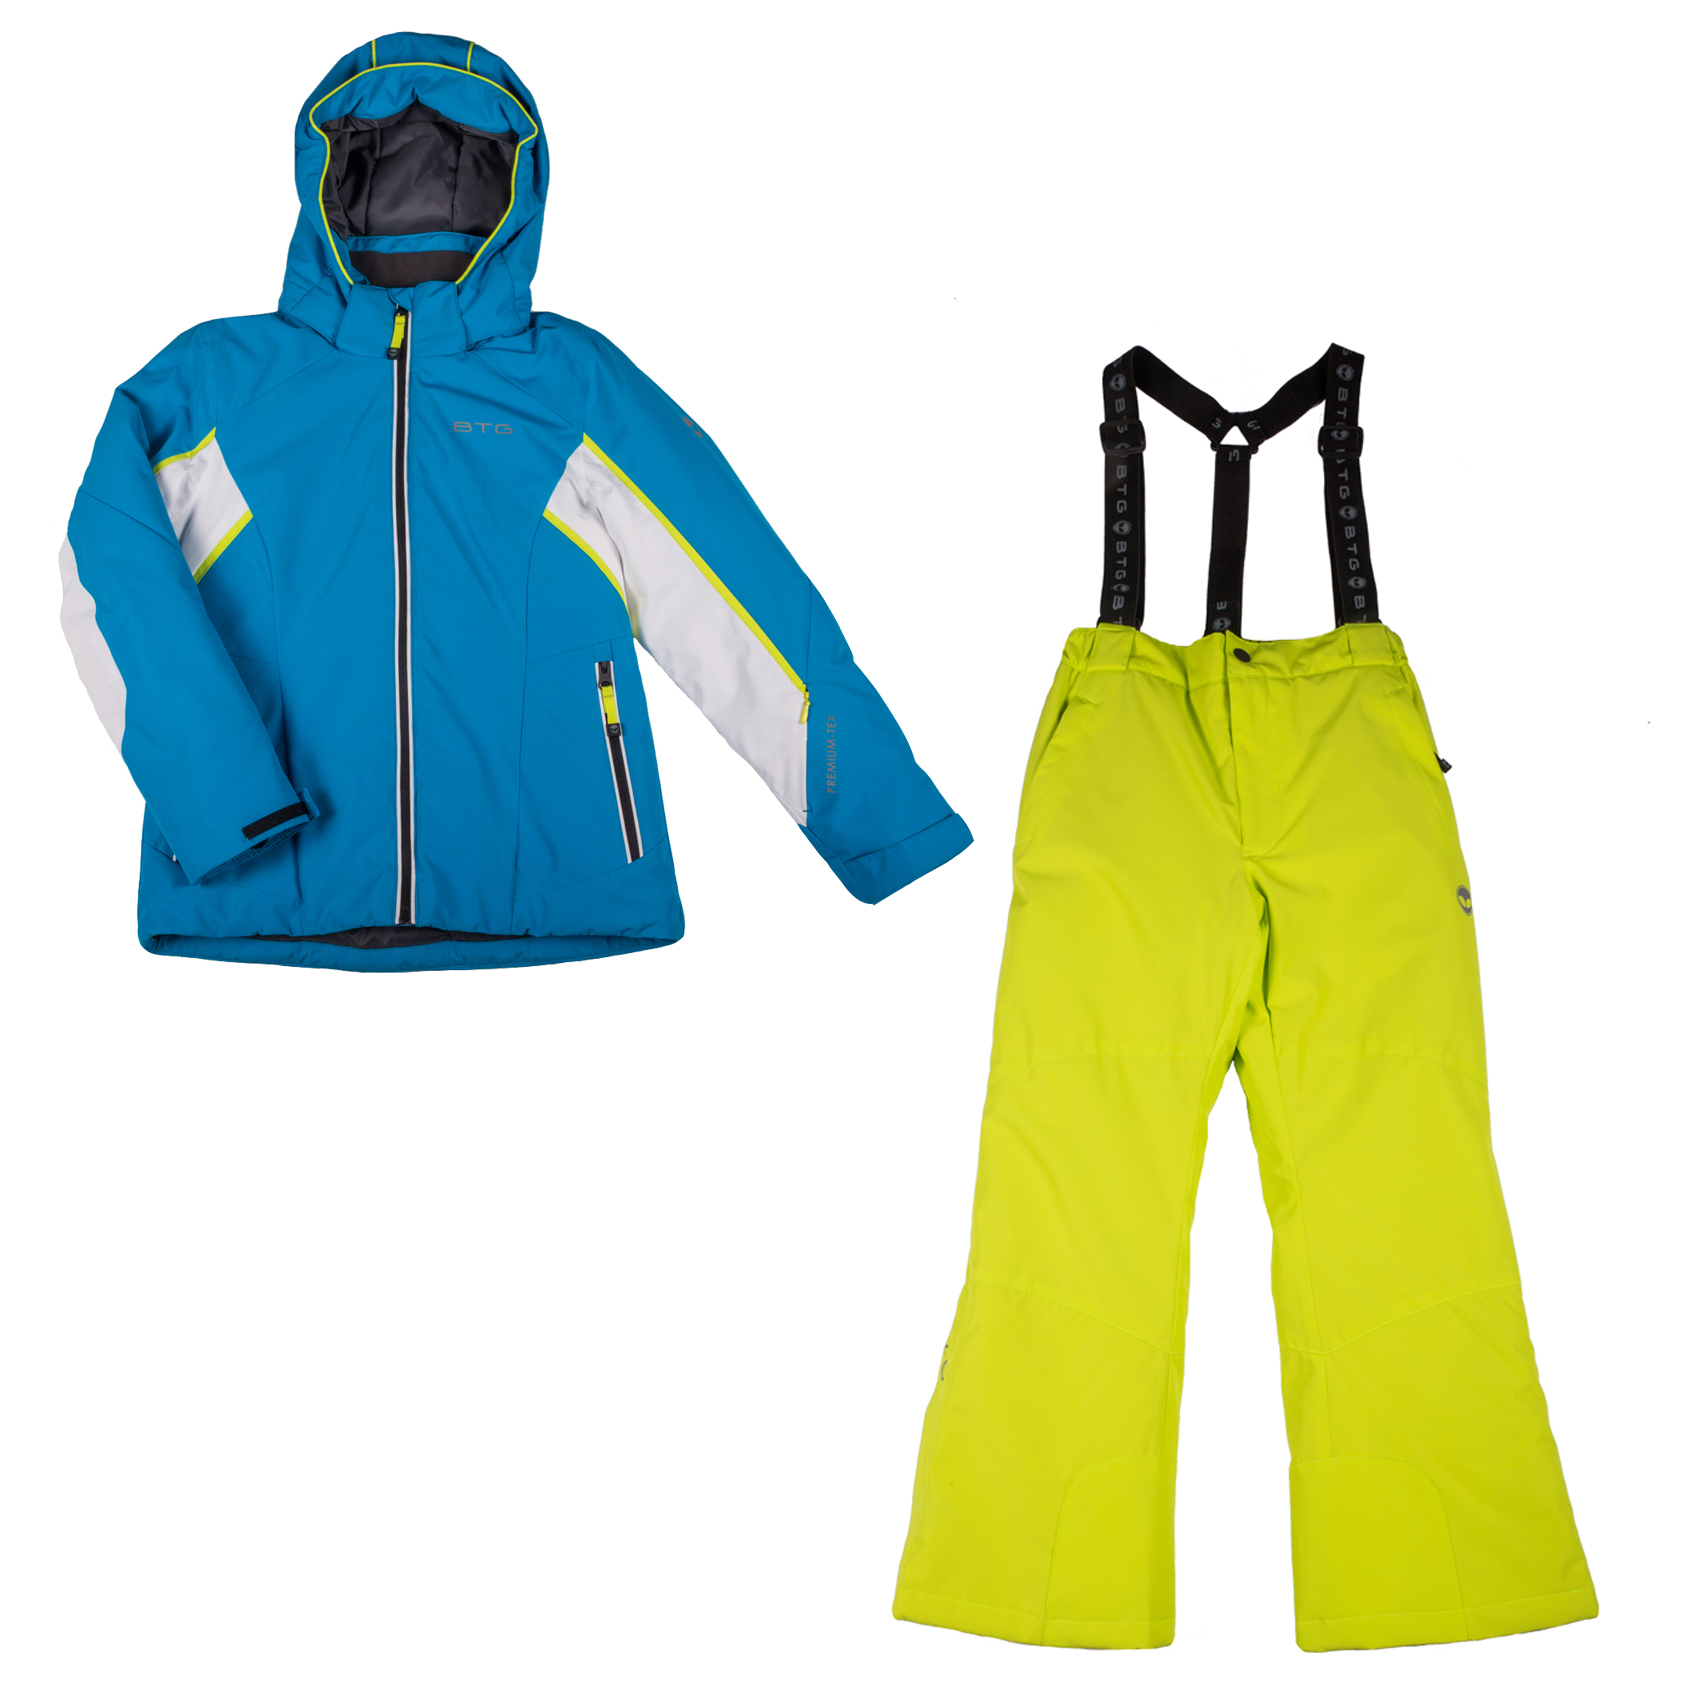 Biting Oceania set suit child ski suit – 2020